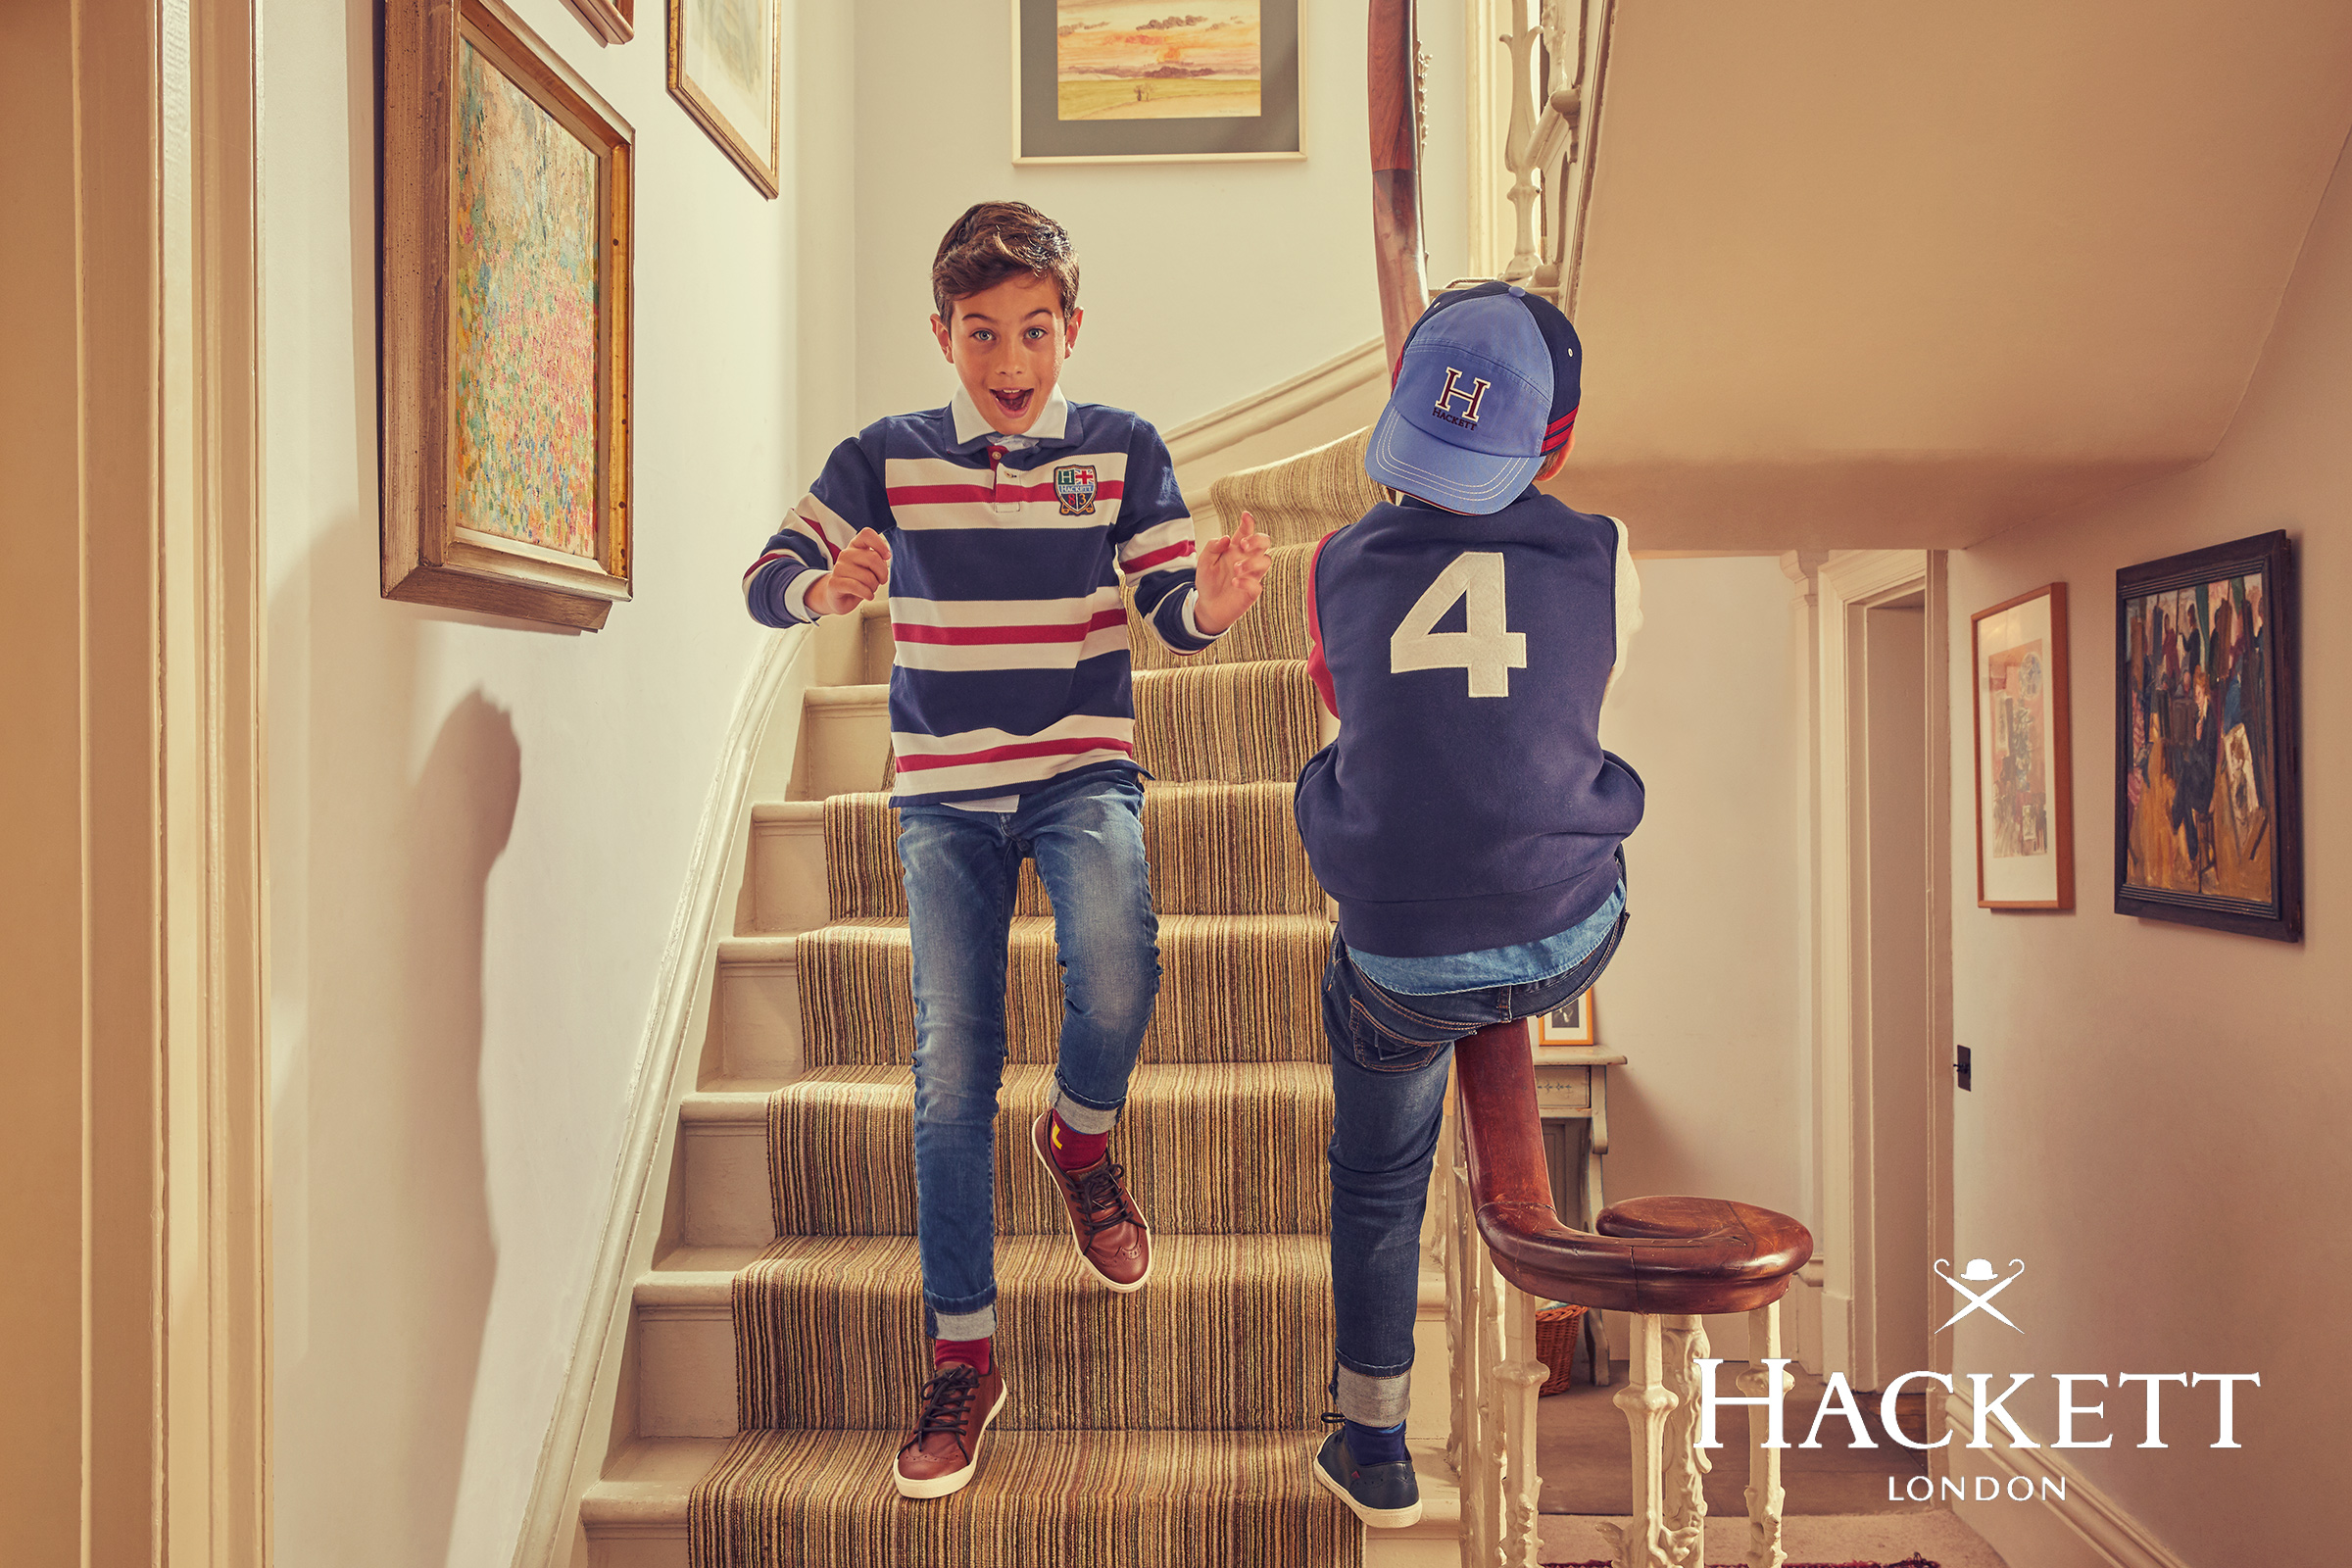 Hackett boys kids fashion campaign Autumn Winter 5